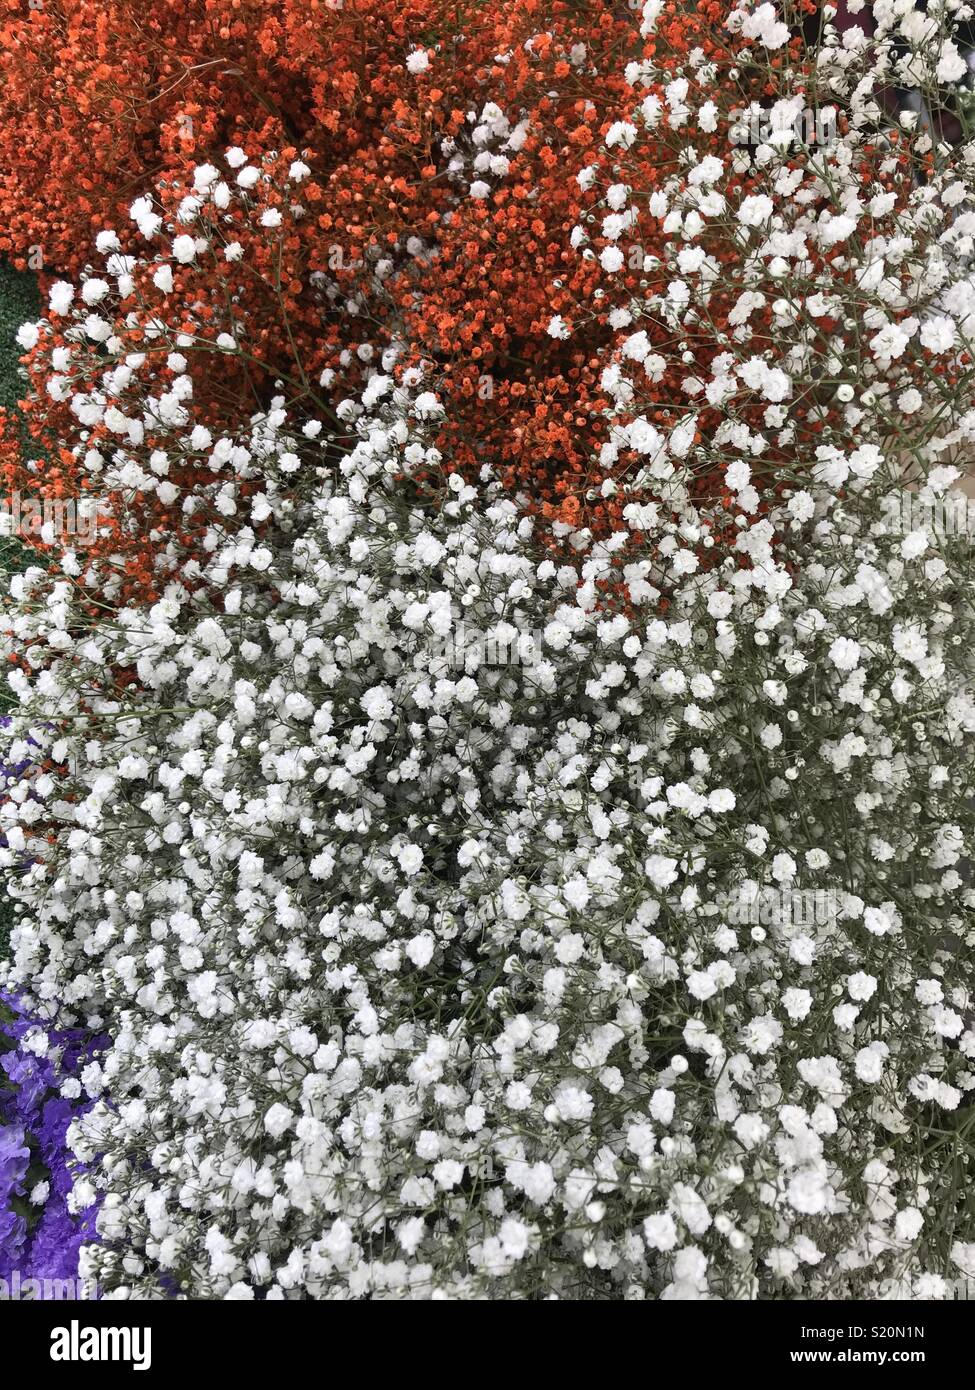 Orange And White Tiny Flowers Known As Baby S Breath Or Gypsophila Used For Home Flower Decorations Or With Wedding Bouquet Paris Market Stock Photo Alamy